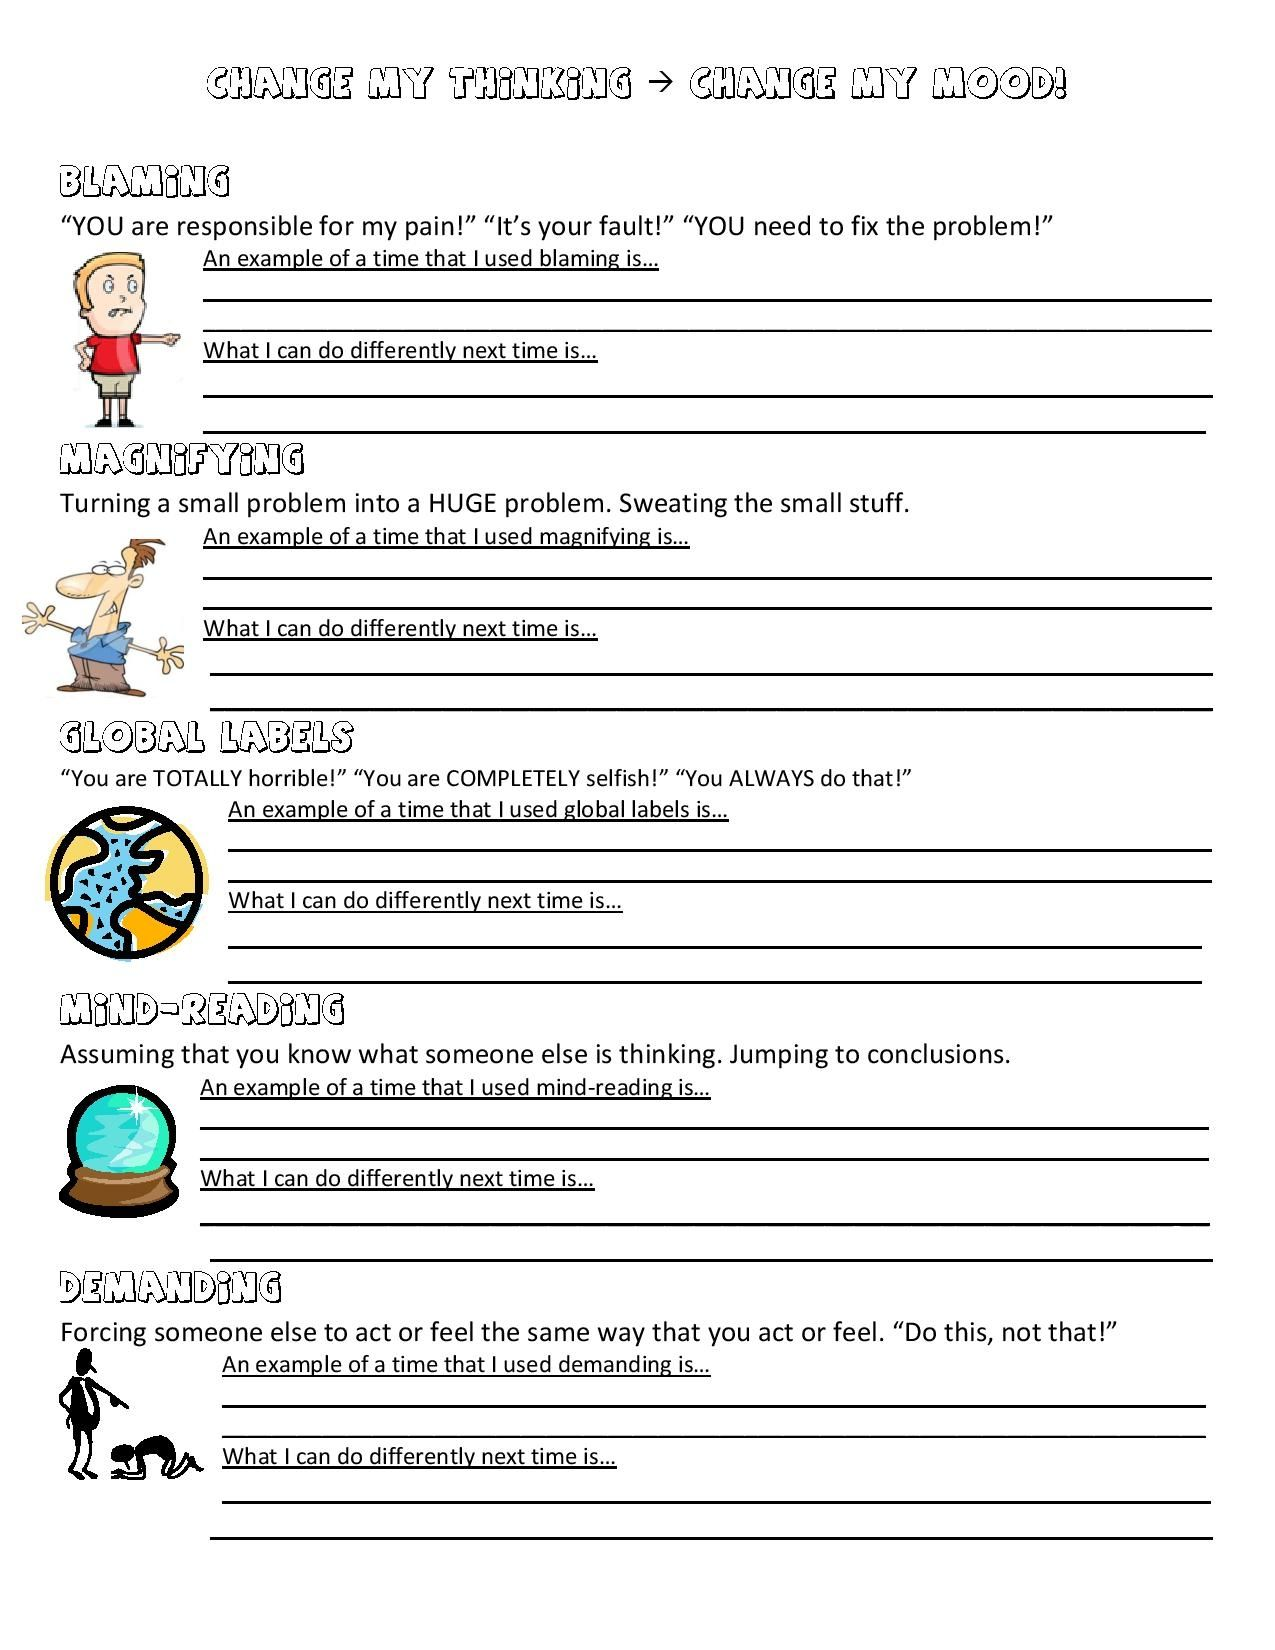 Printables Bullying Worksheets For Middle School 1000 images about ethics religious culture on pinterest character counts the giving tree and lesson plans